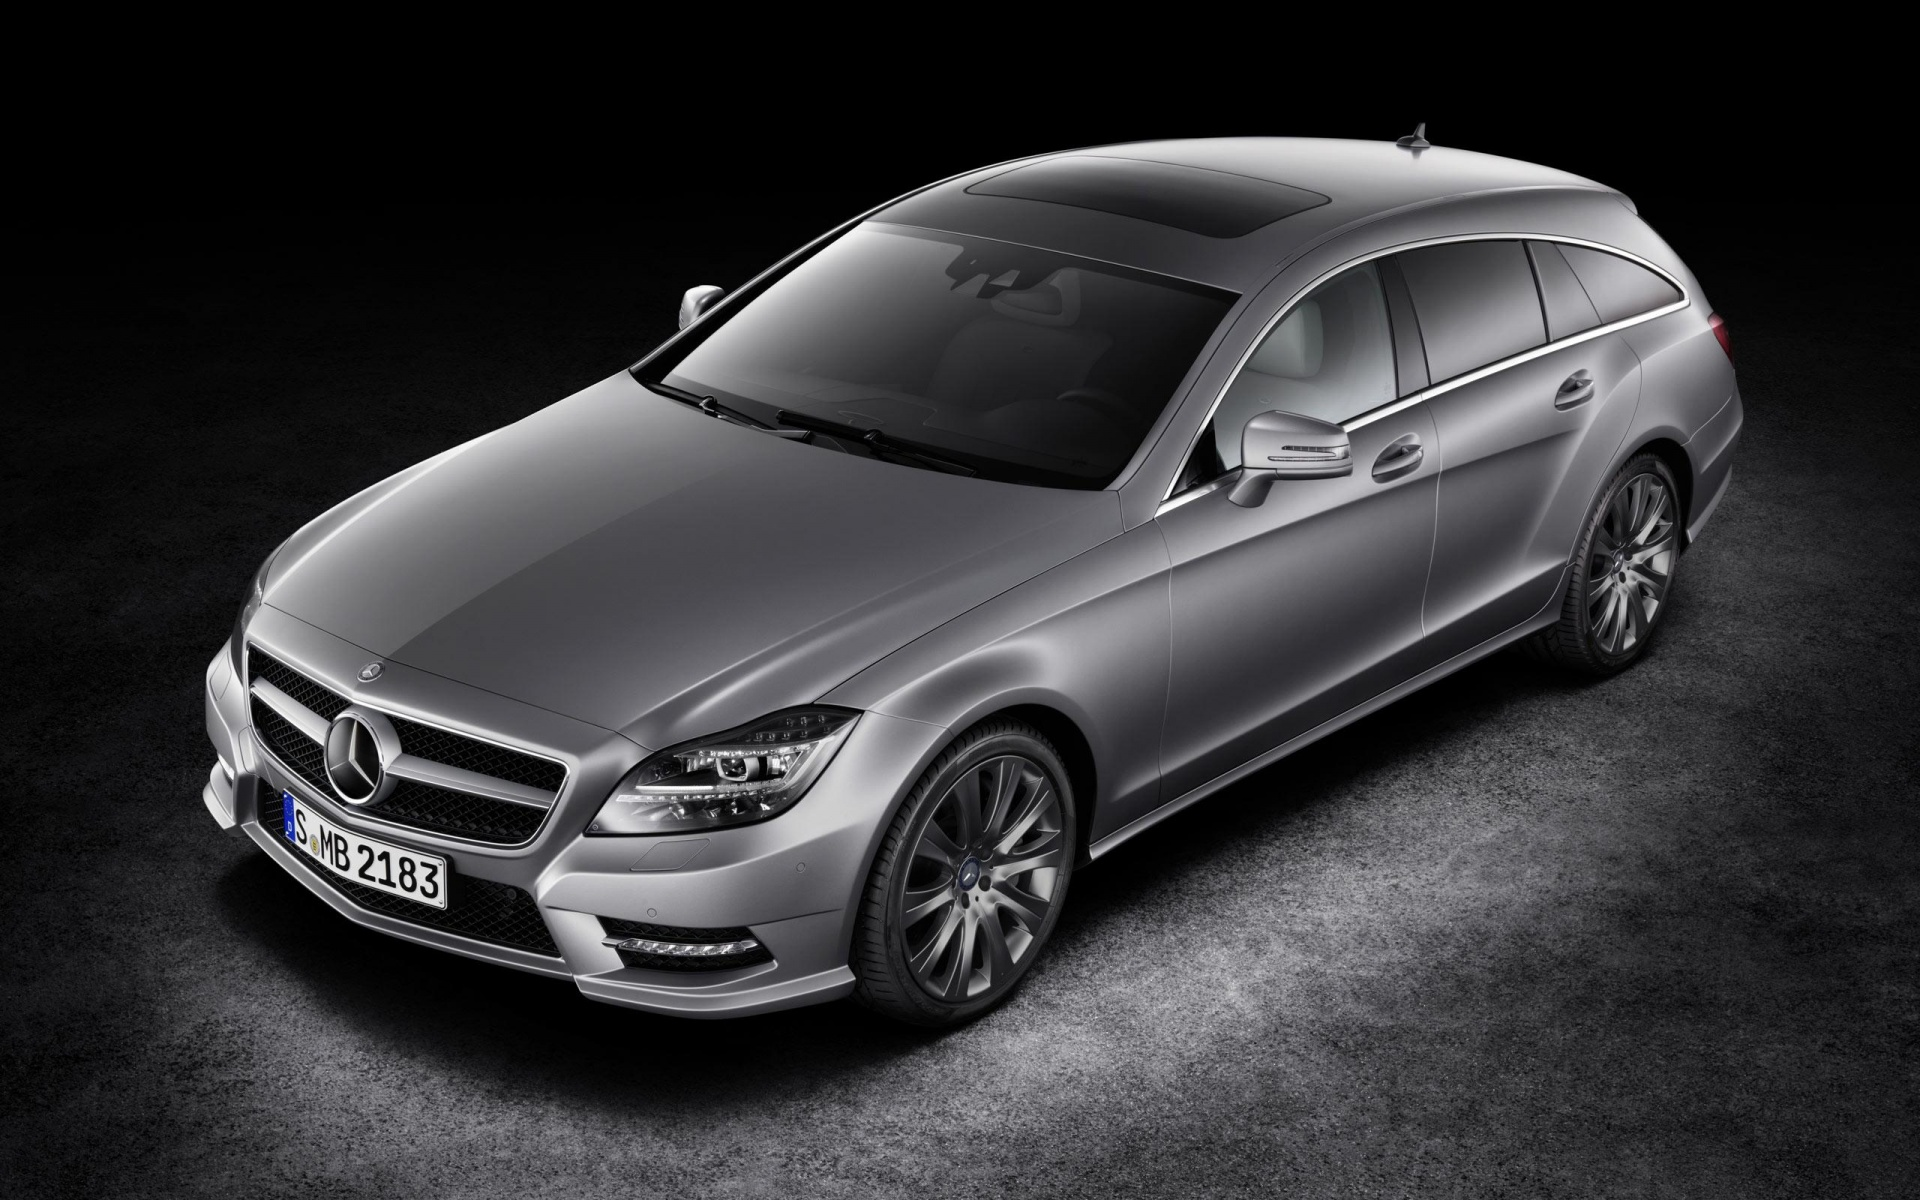 Mercedes Benz CLS Class Black Car